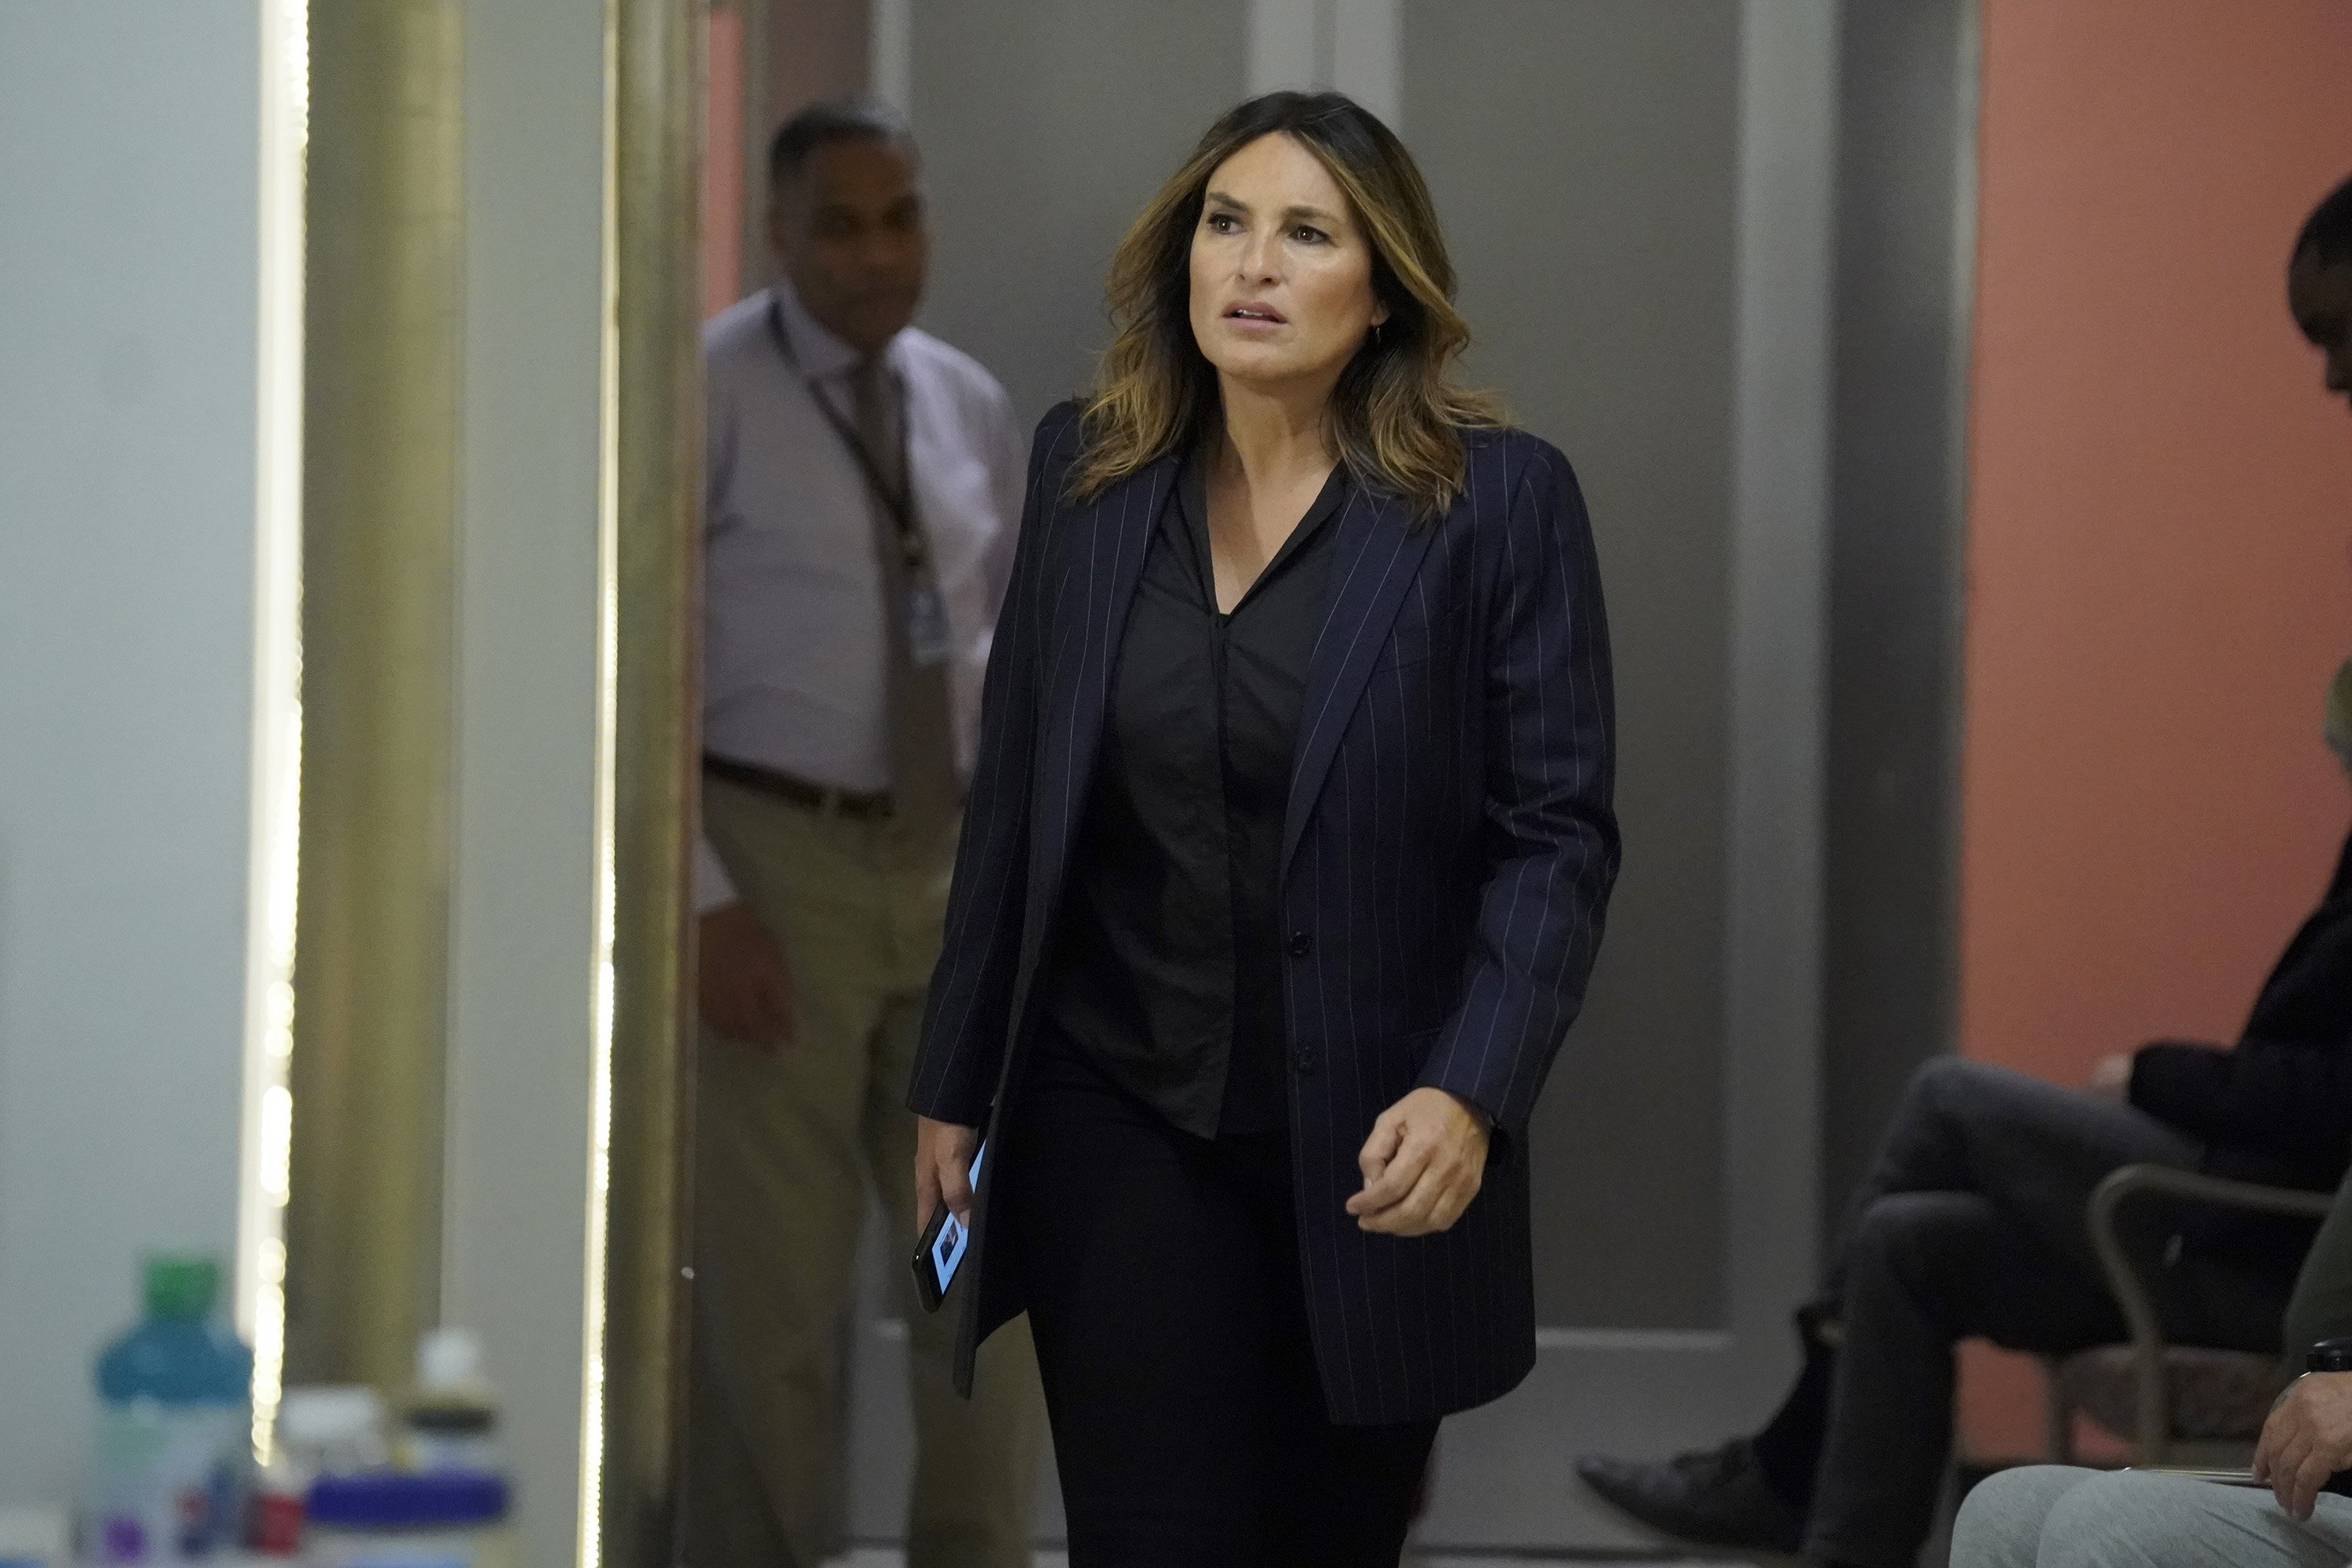 """Mariska Hargitay on set of """"Law & Order: SVU"""" episode titled """"Eternal Relief from Pain"""" in February 6, 2020   Photo: Getty Images"""